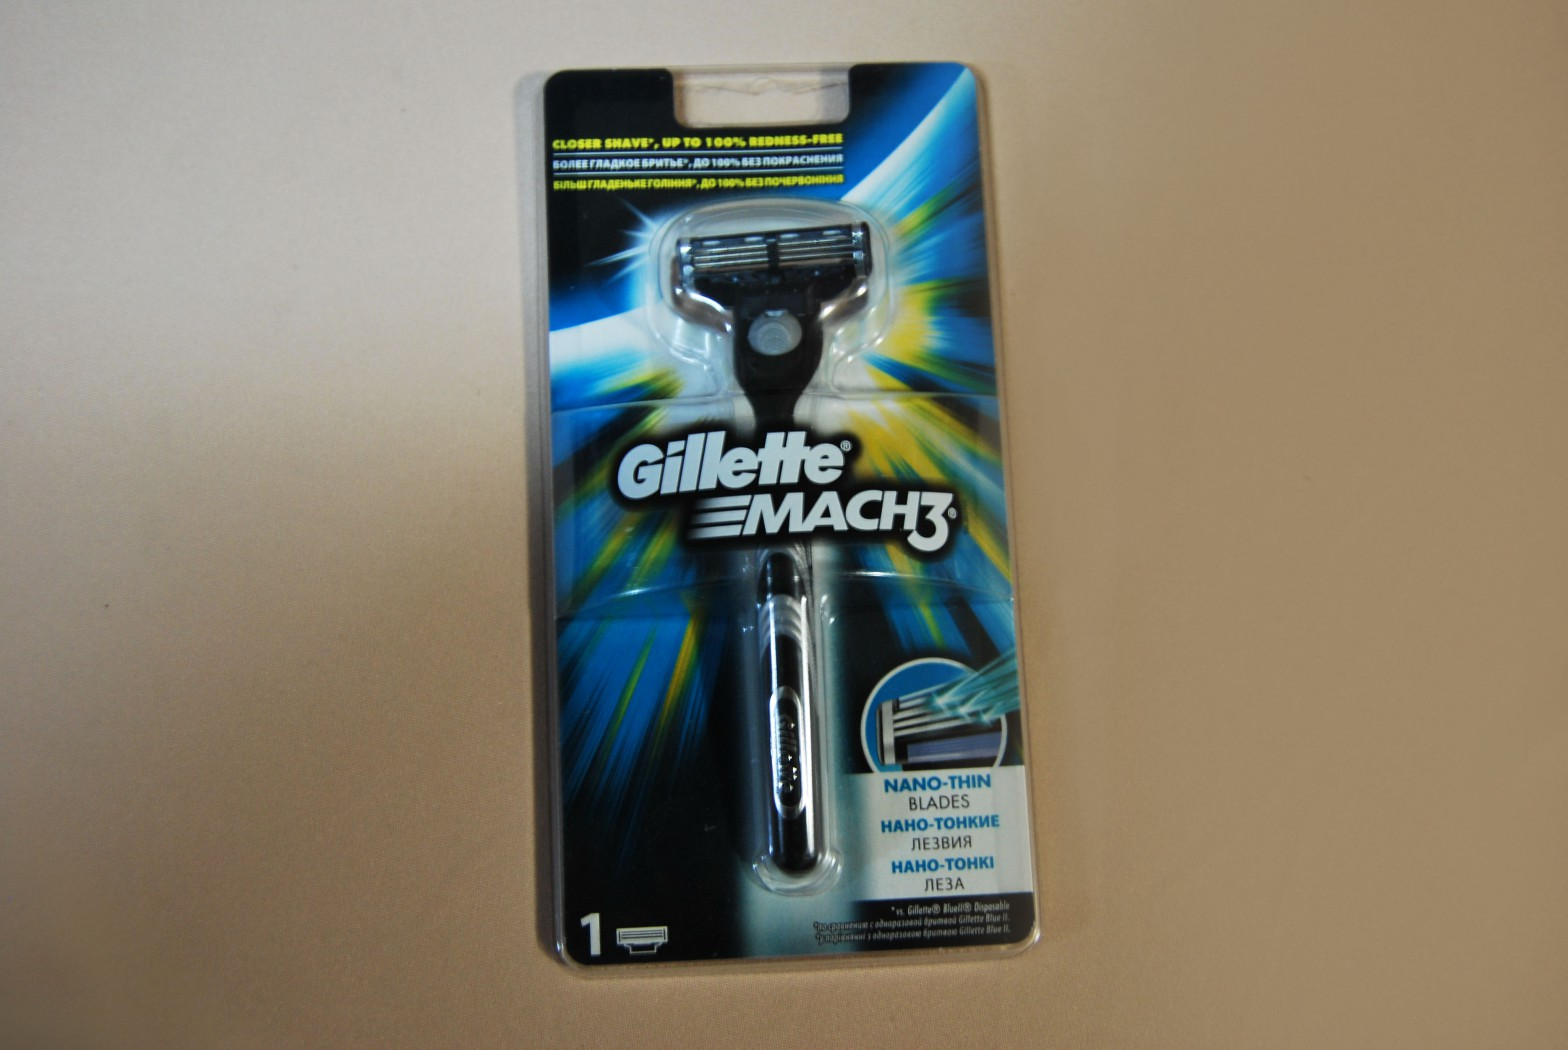 the success of mach3 gillette series Gillette's mach3® shaving system gillette launches gillette series line of shaving products with its signature cool wave fragrance.